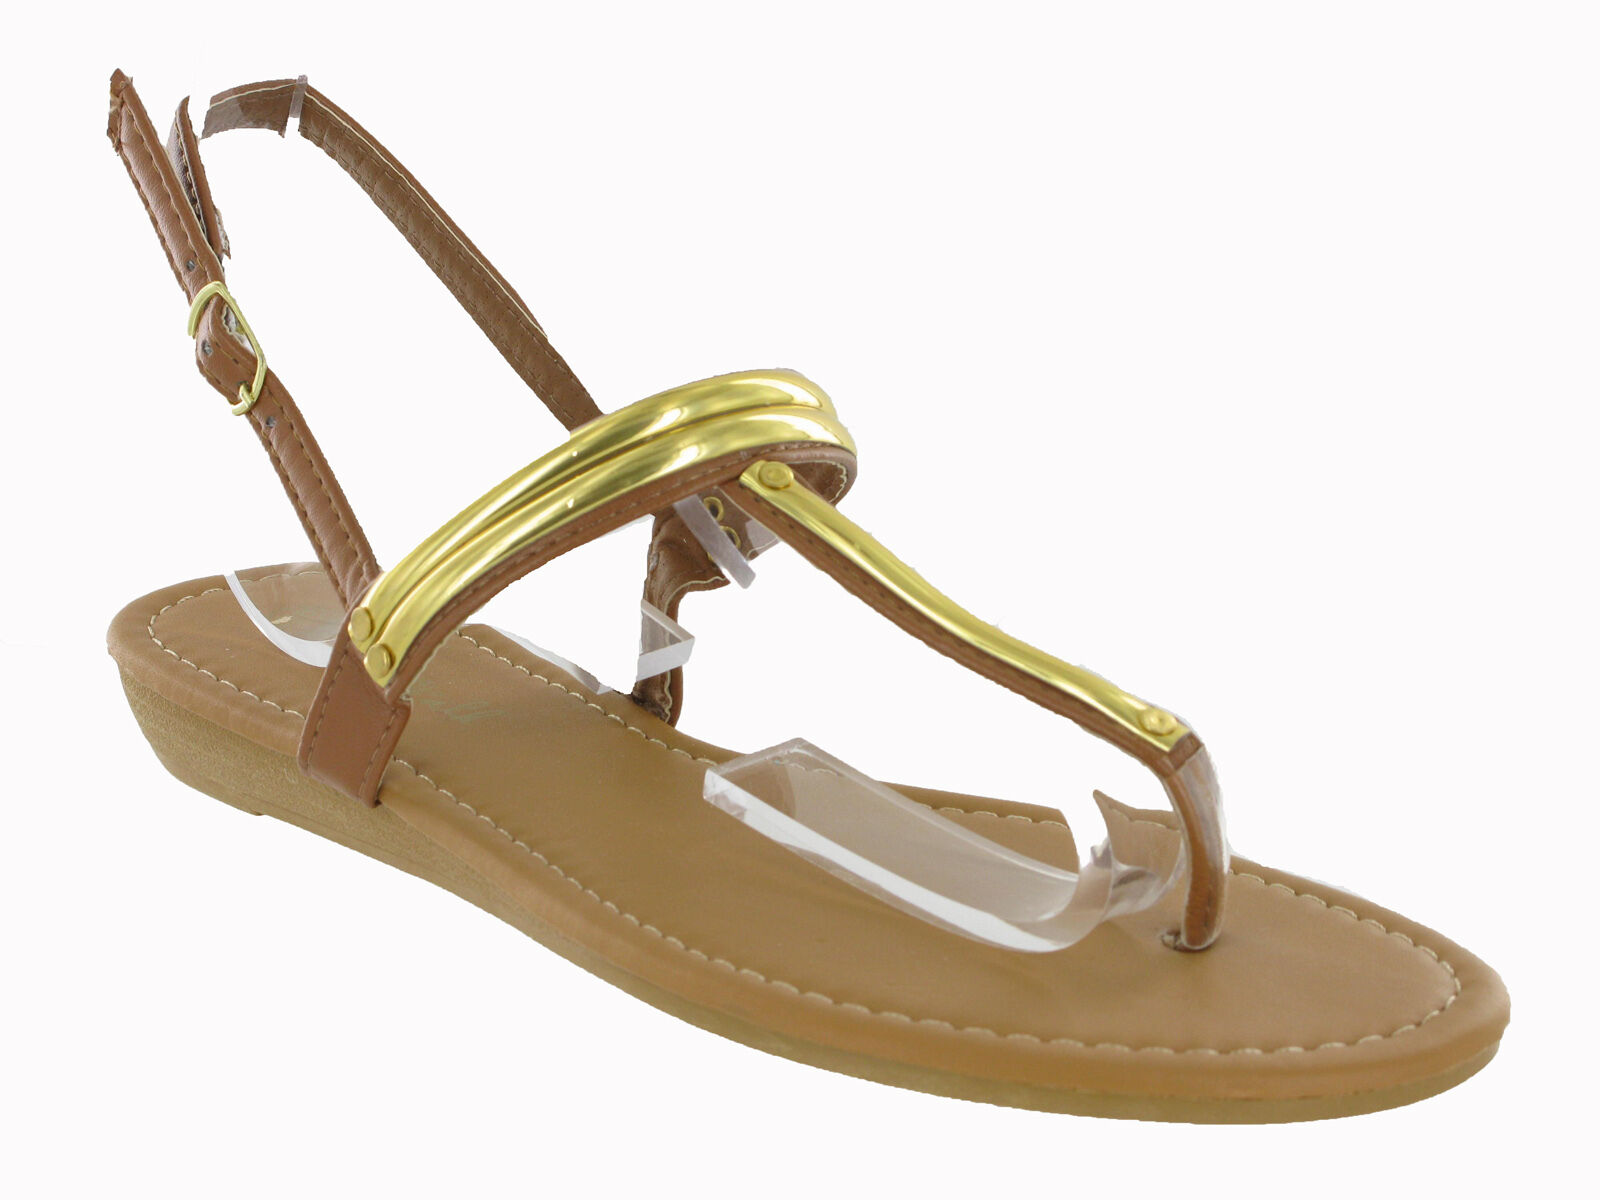 5b3c8088322 Toepost Small Wedge Flip Flop Buckle Summer Womens Strappy Sandals UK3-9